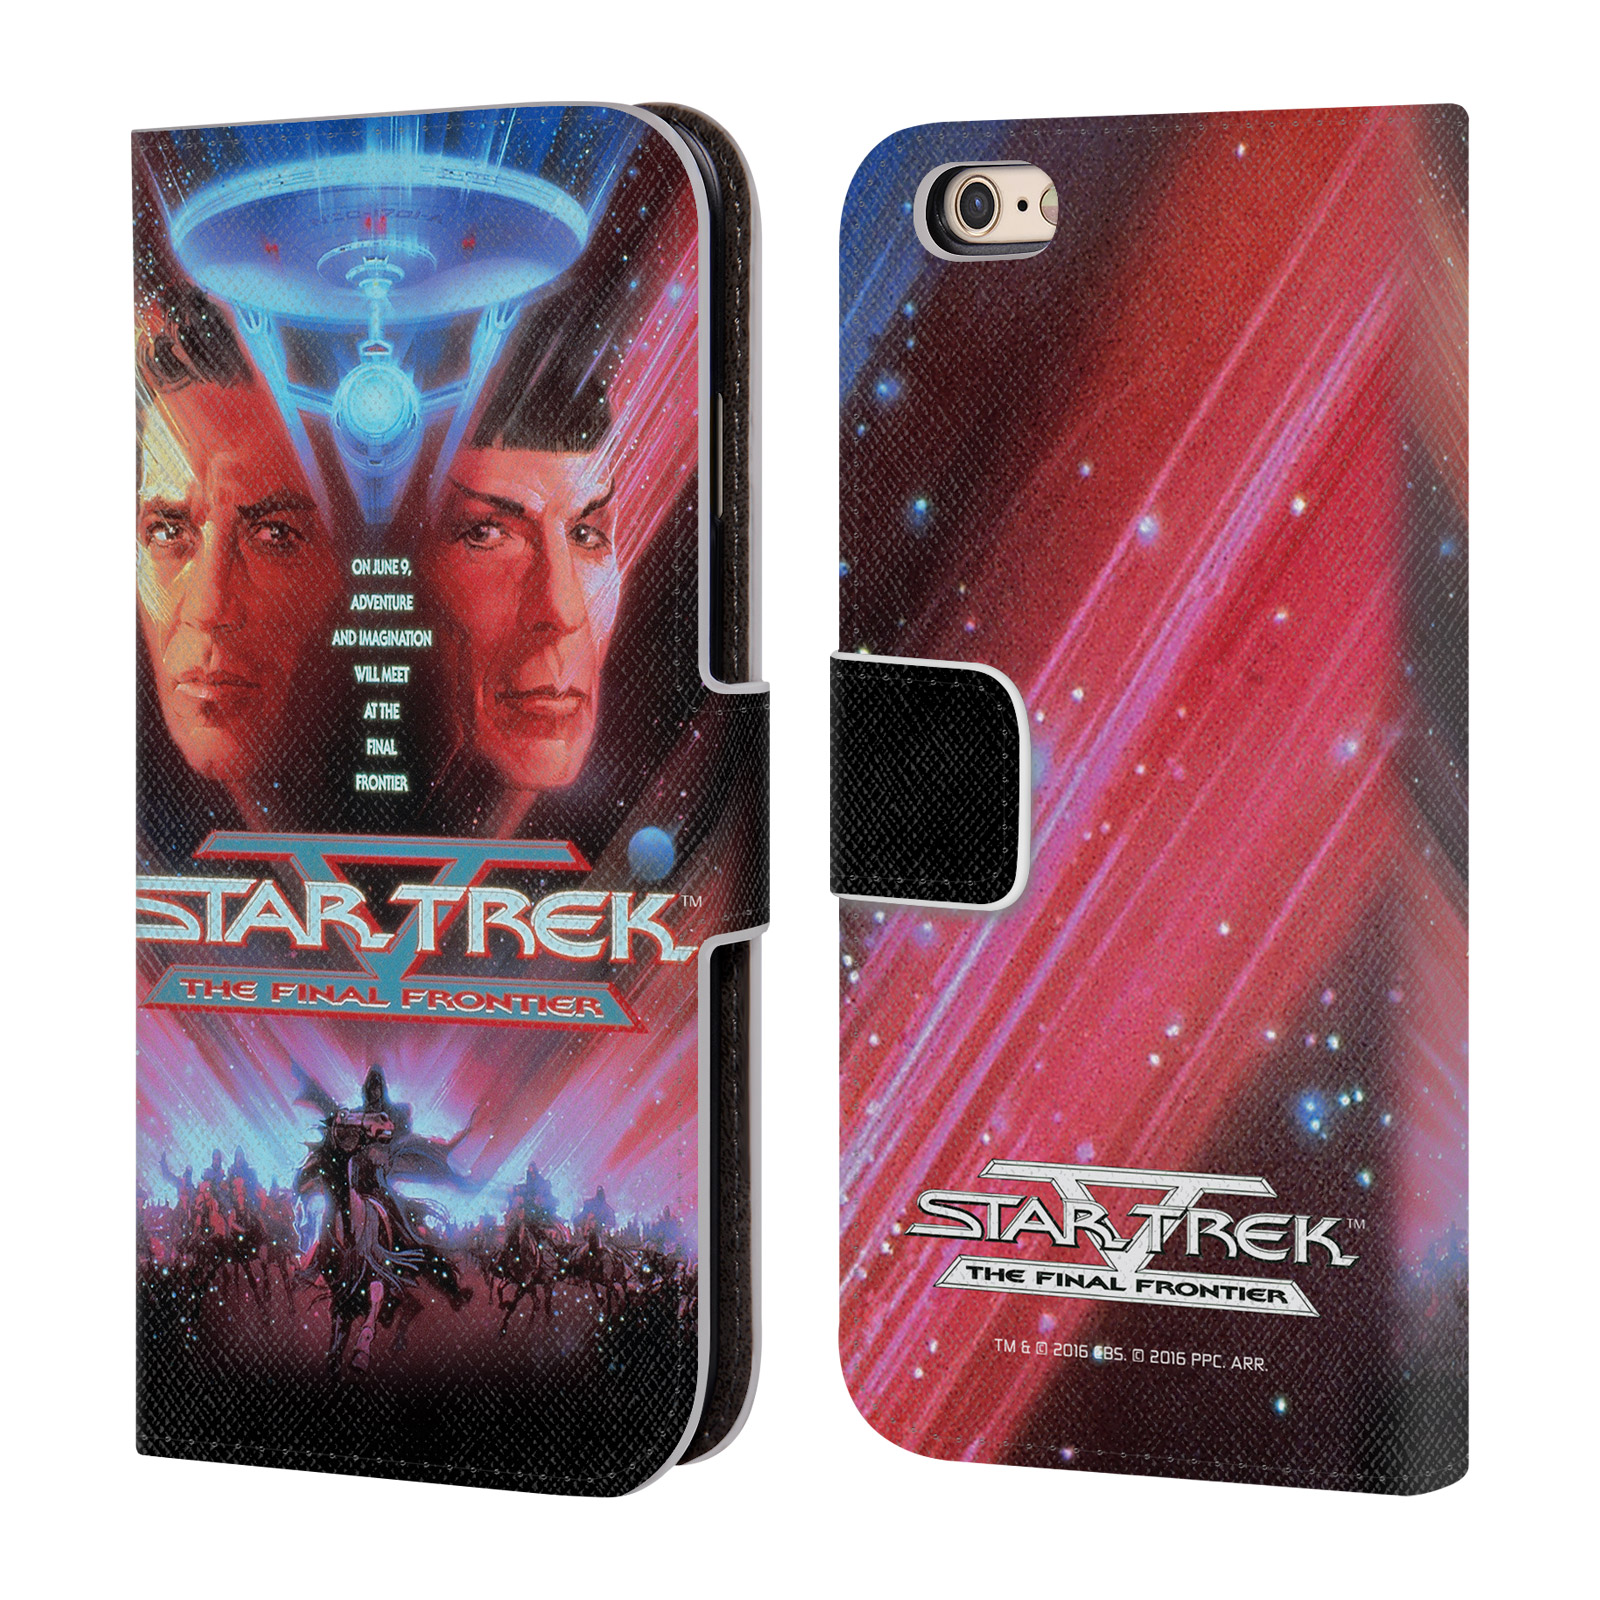 OFFICIAL STAR TREK MOVIE POSTERS TOS LEATHER BOOK WALLET CASE COVER FOR APPLE IPHONE PHONES